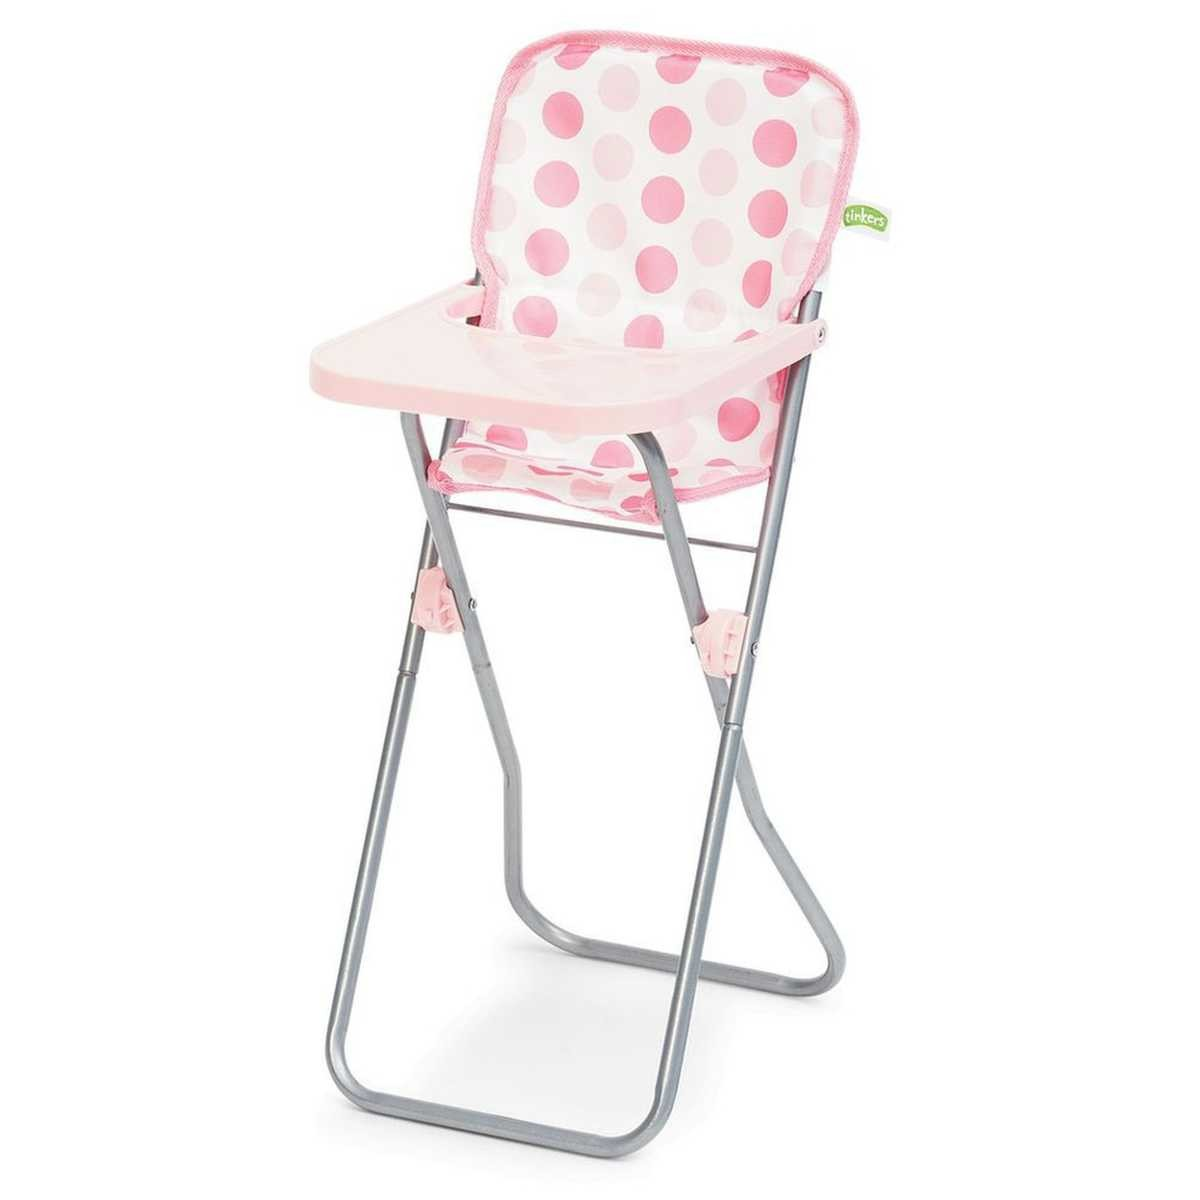 Baby Food Chair Tinkers Doll High Chair Pink